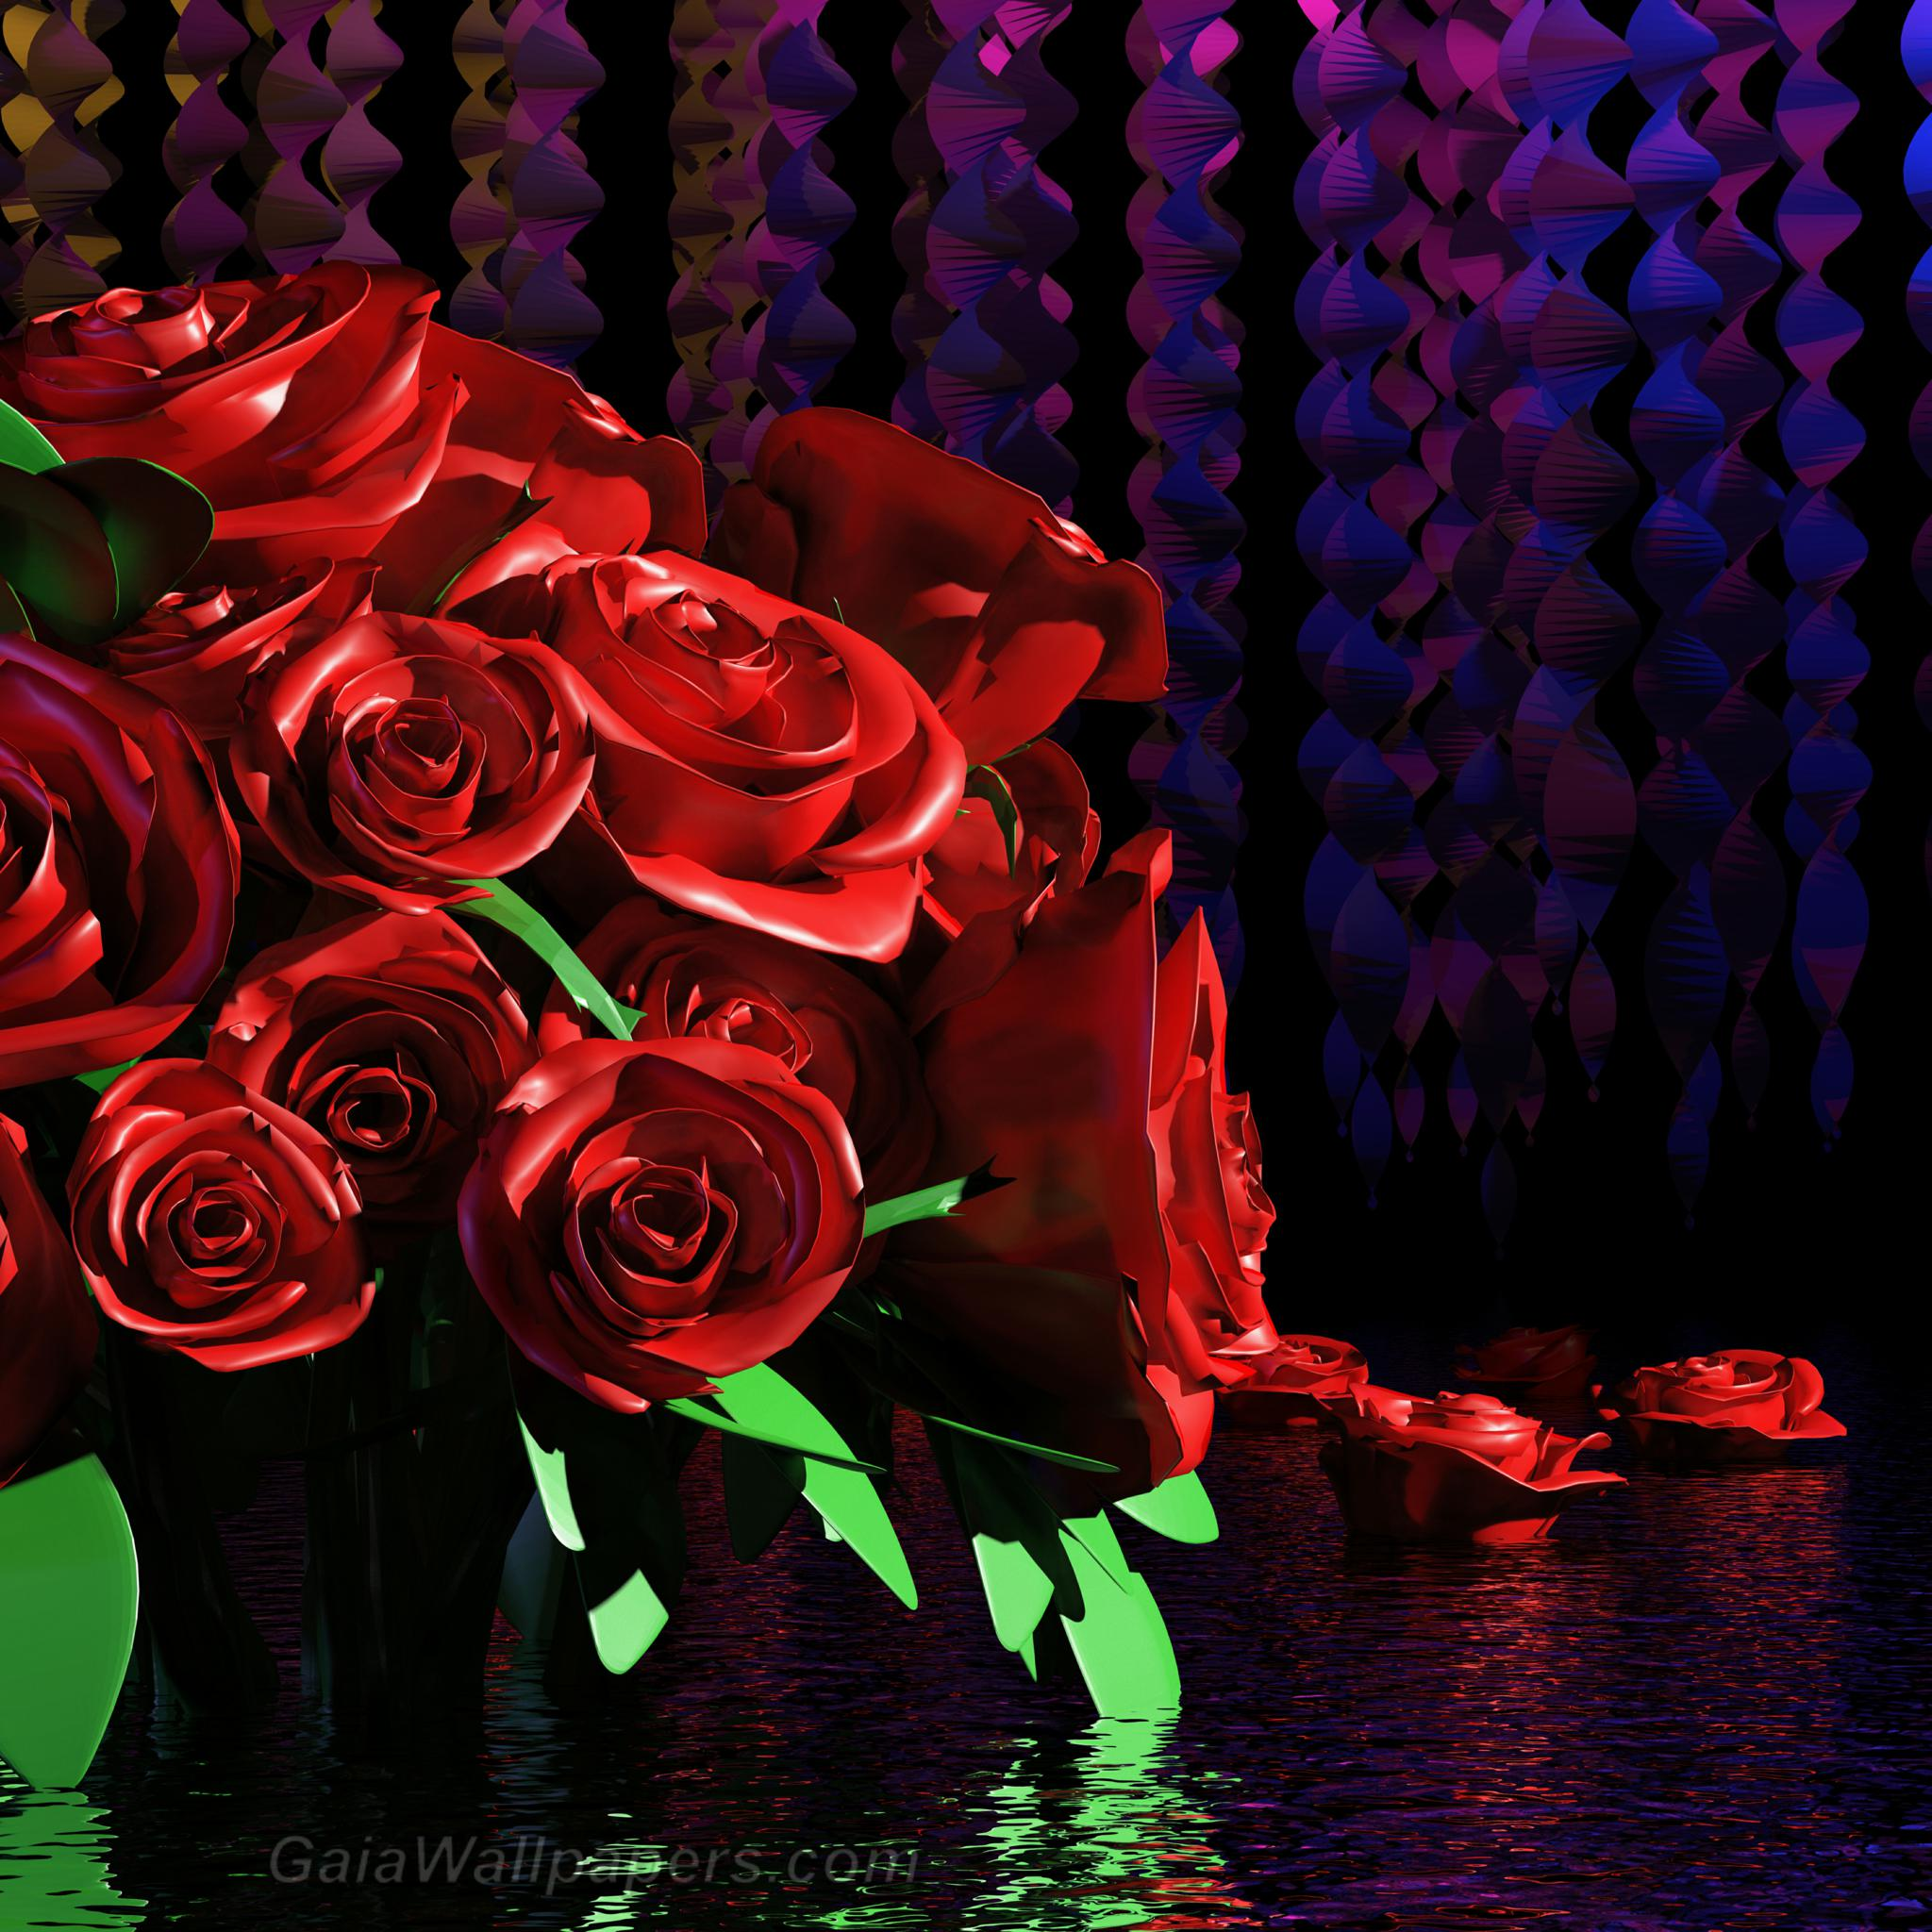 Peaceful roses in the calm energy space - Free desktop wallpapers